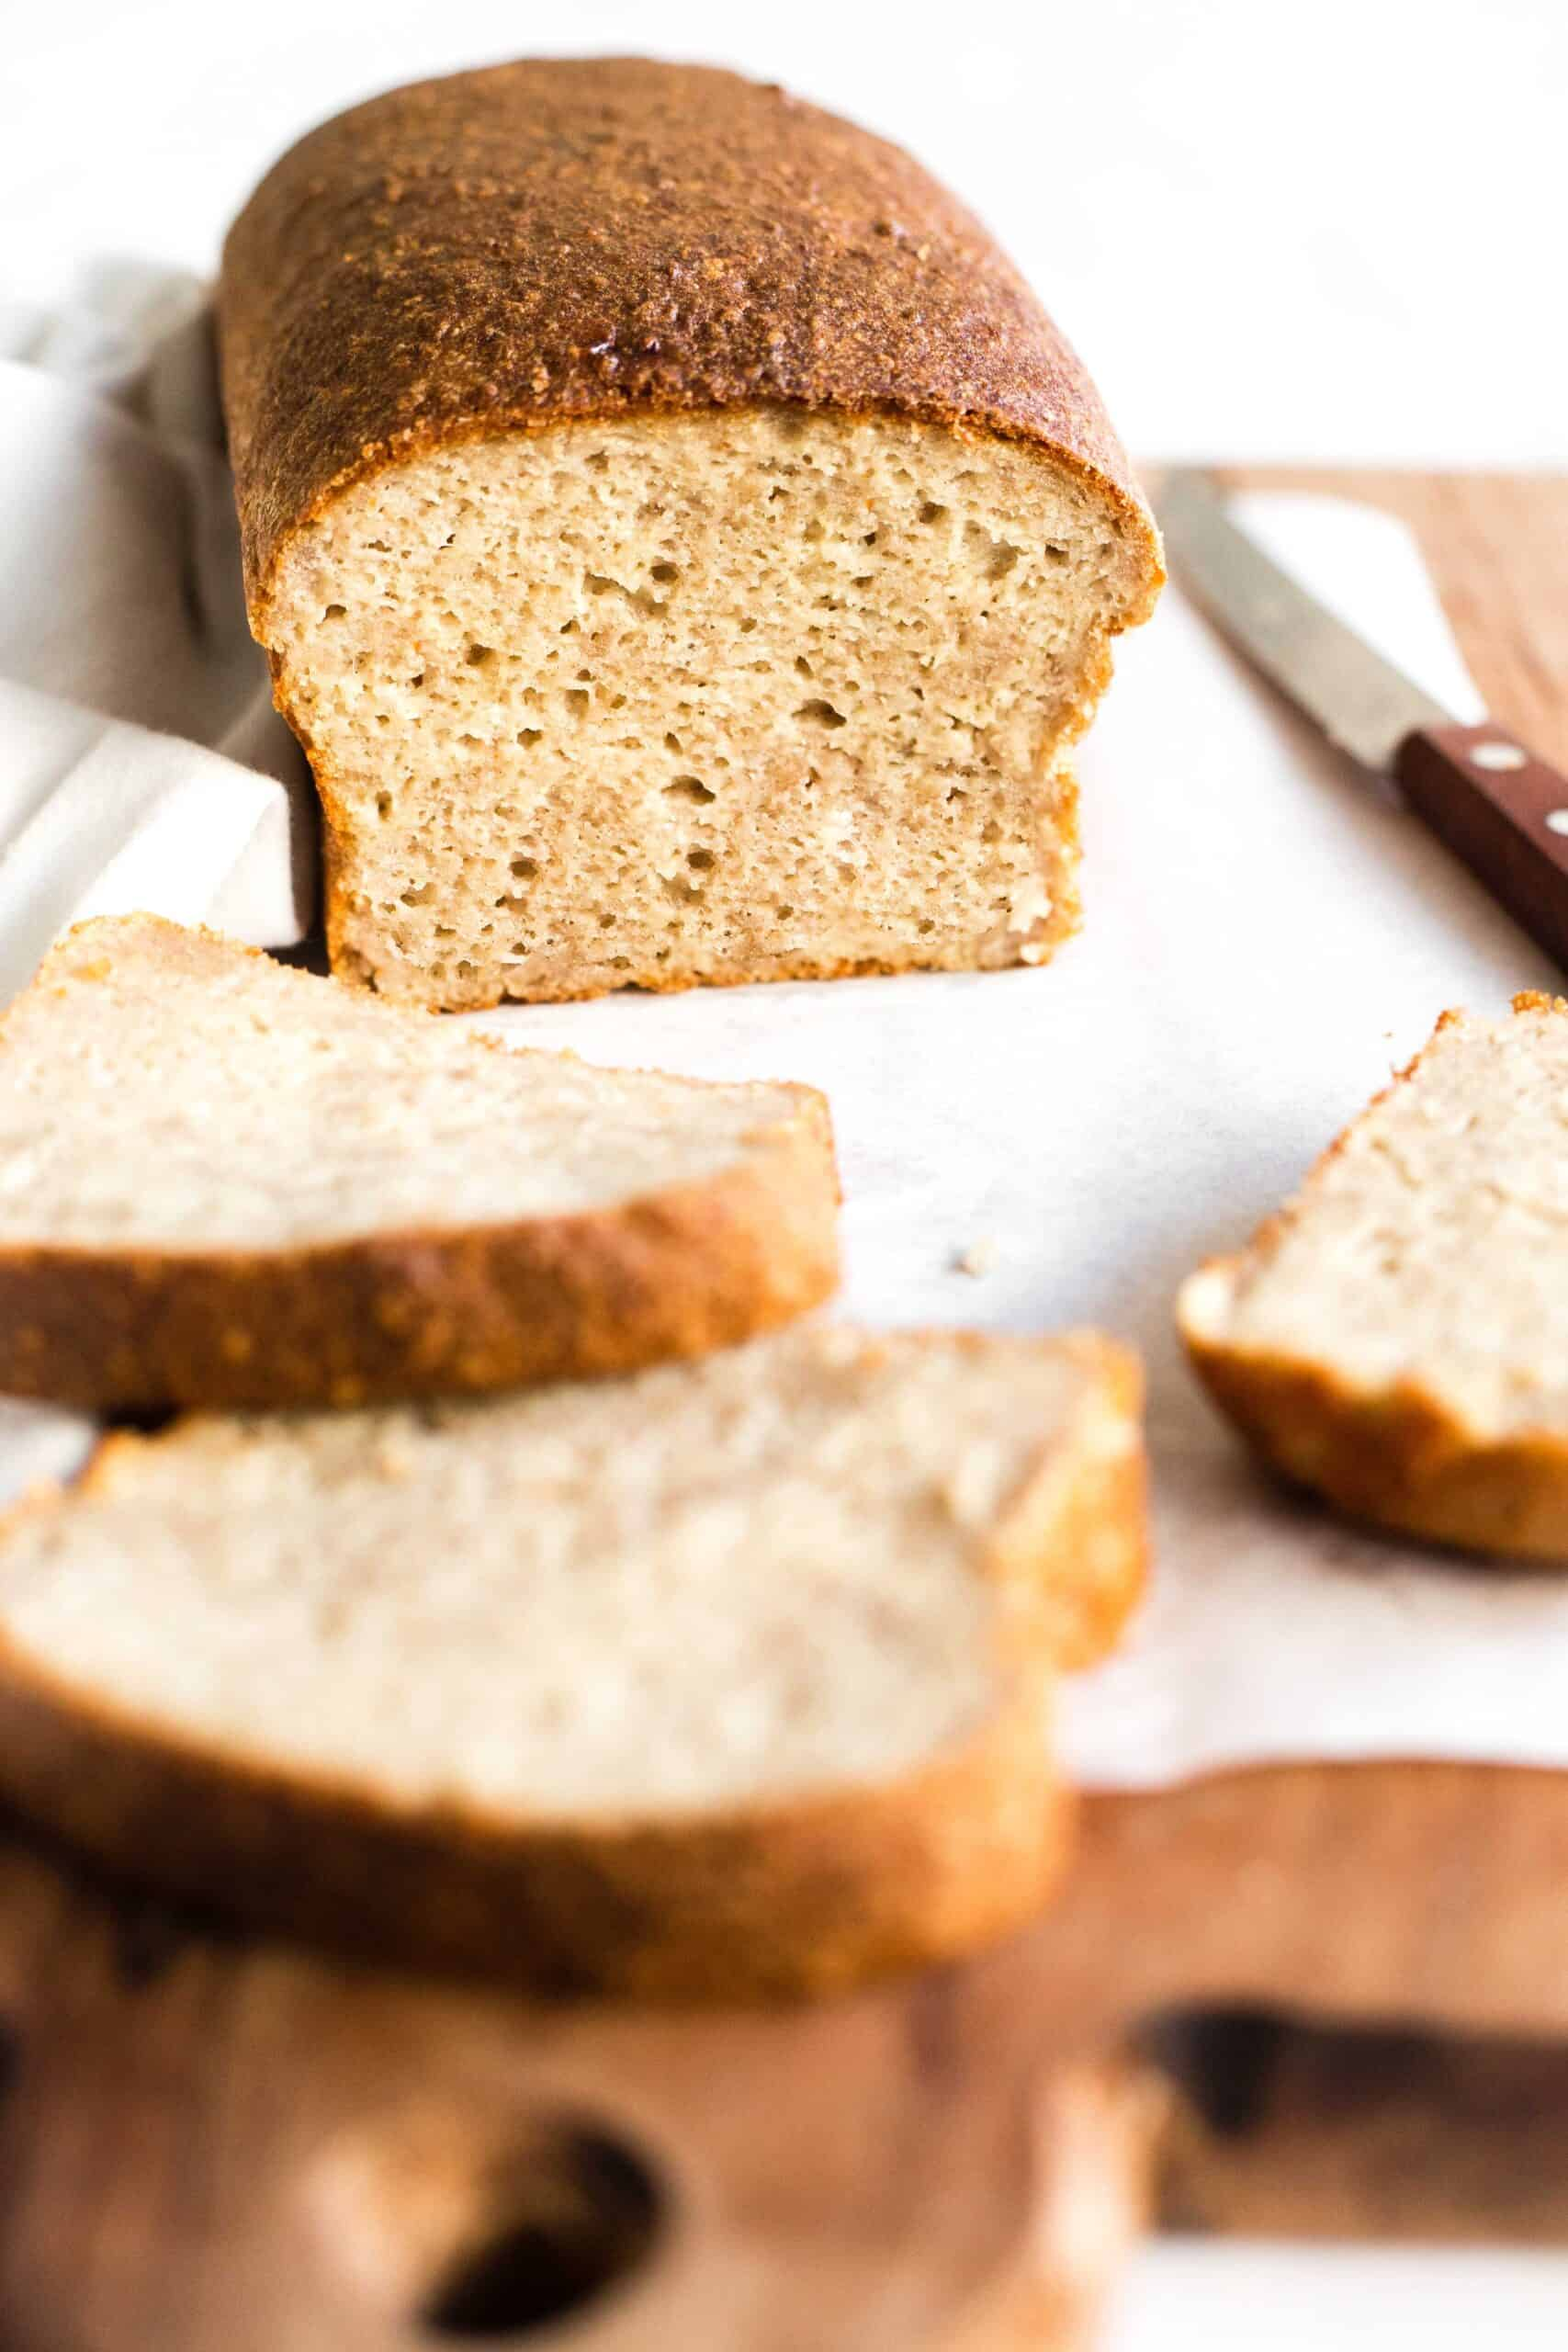 A half-sliced loaf of yeast quinoa bread on a parchment-lined wooden board.